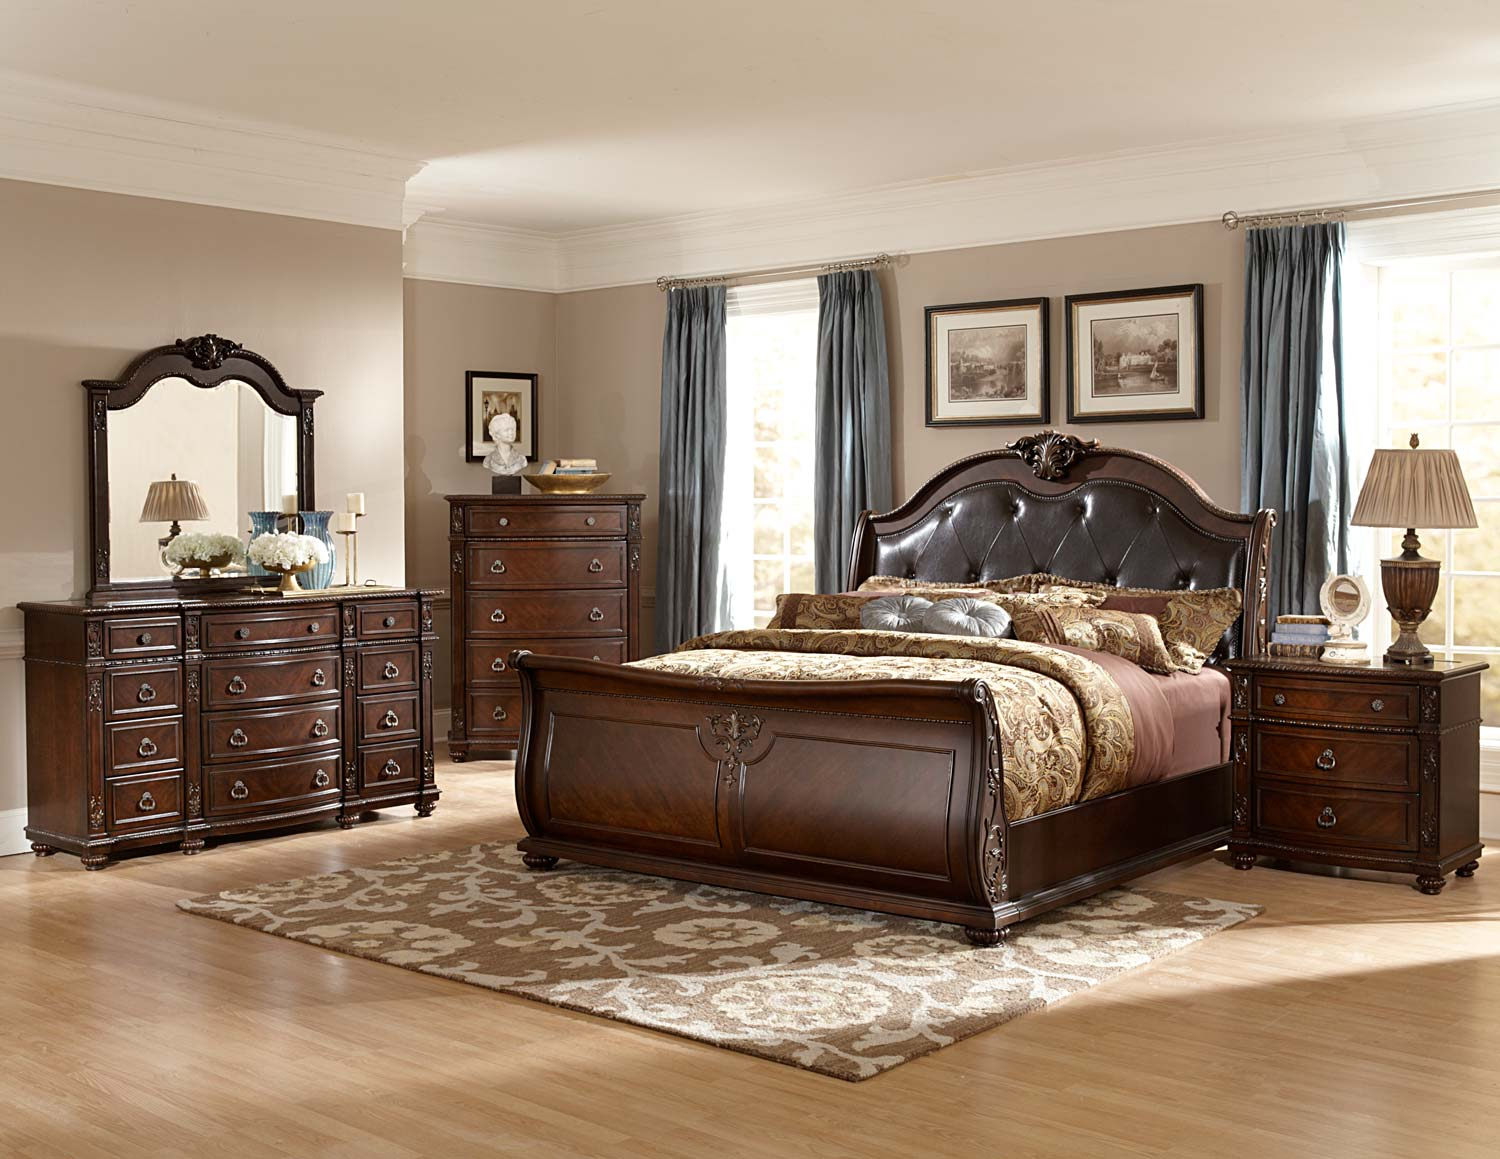 Bedroom Sets For Small Bedrooms: Homelegance Hillcrest Manor Sleigh Bedroom Set